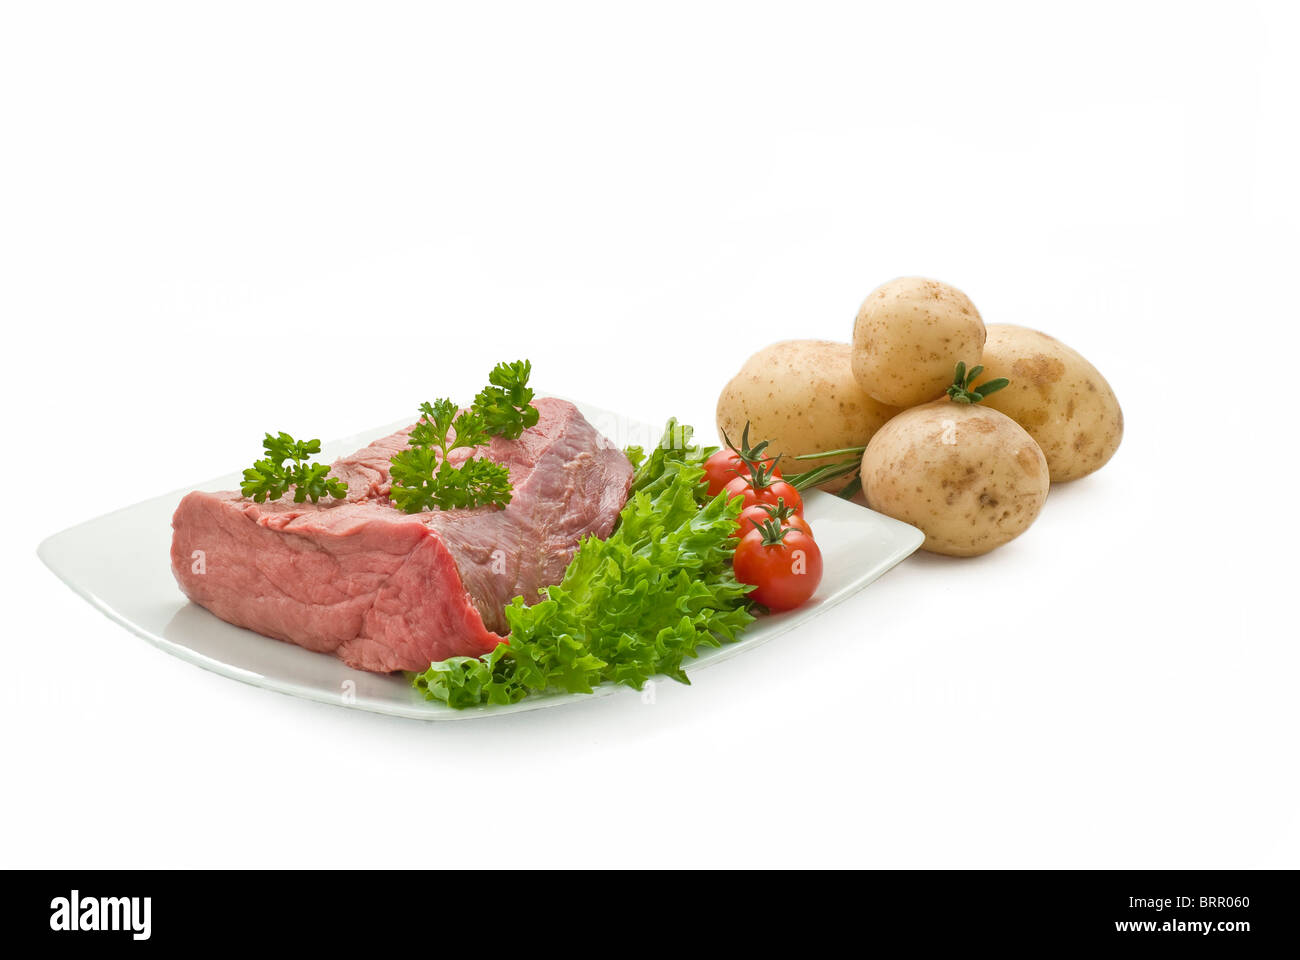 Fresh beef join with potatoes tomatoes salad and herbs - Stock Image